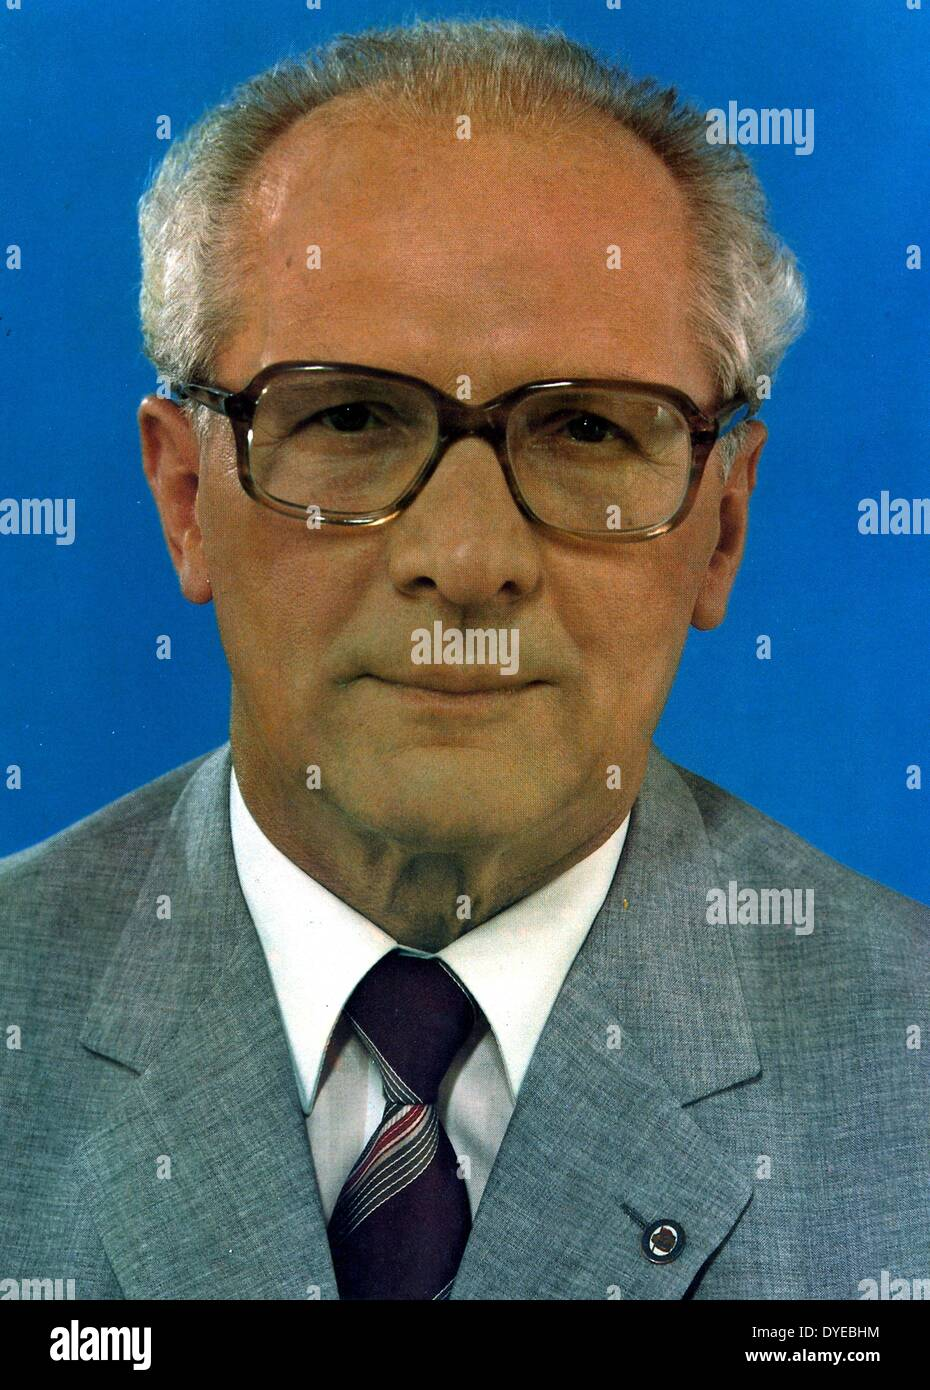 Erich Honecker 1912-1994, German communist politician who led East Germany as the General Secretary of the Socialist Unity - Stock Image